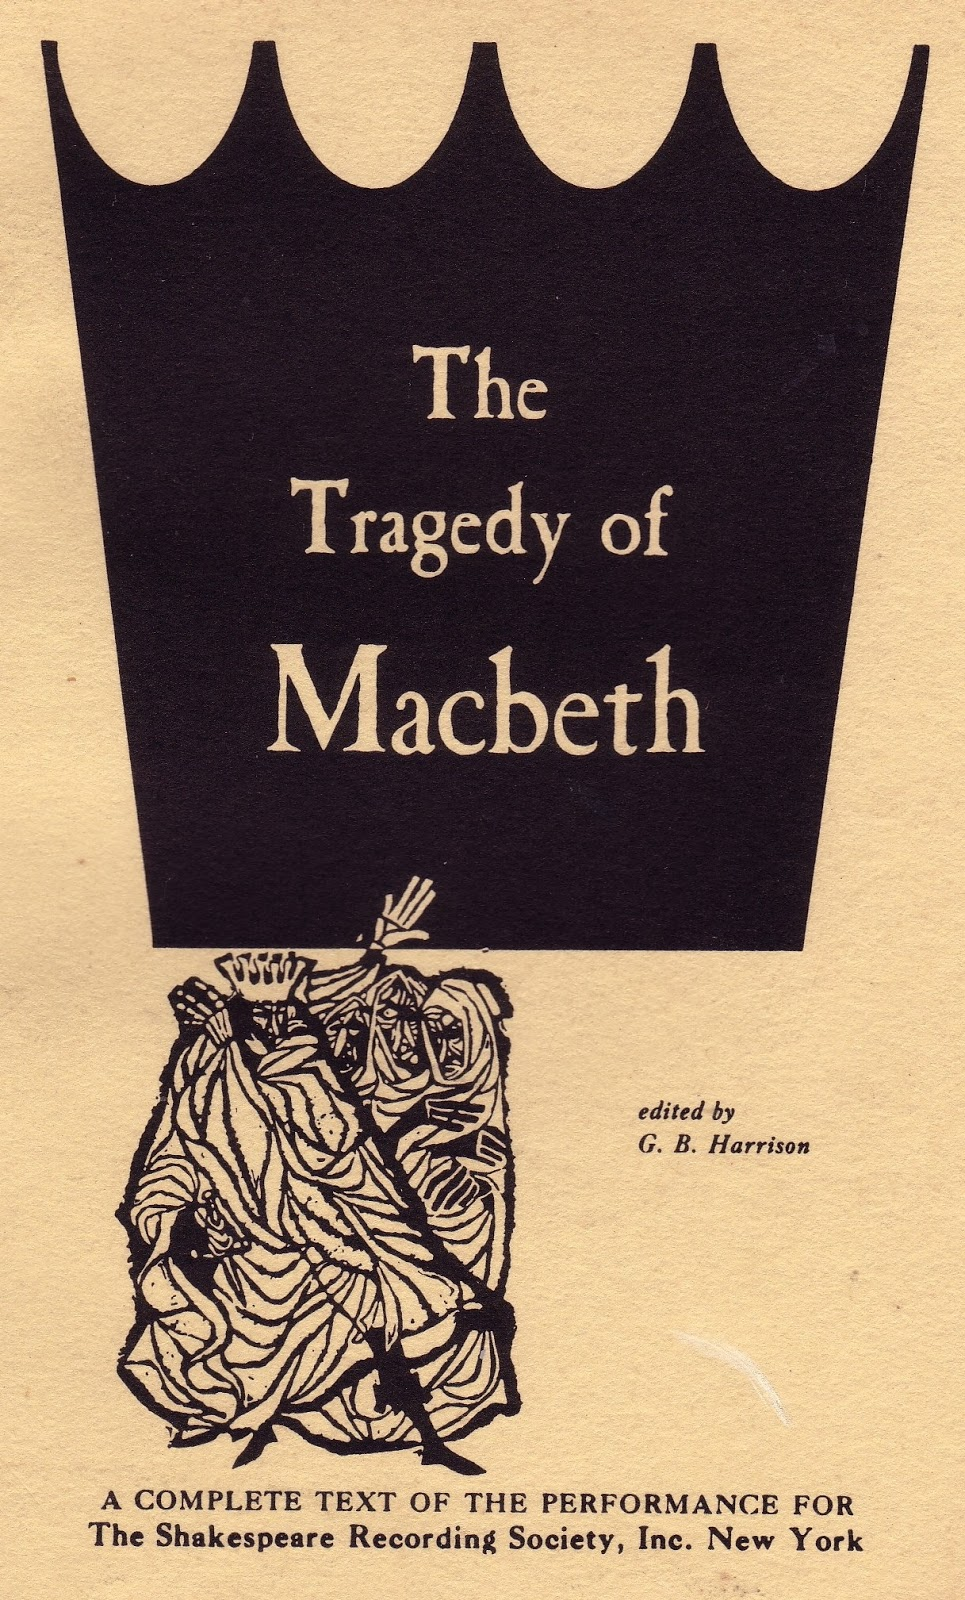 an analysis of darkness in william shakespeares tragedy macbeth Free essay: use of the supernatural in macbeth in shakespeare's play the tragedy of macbeth, shakespeare uses an underlying motif of the supernatural to.